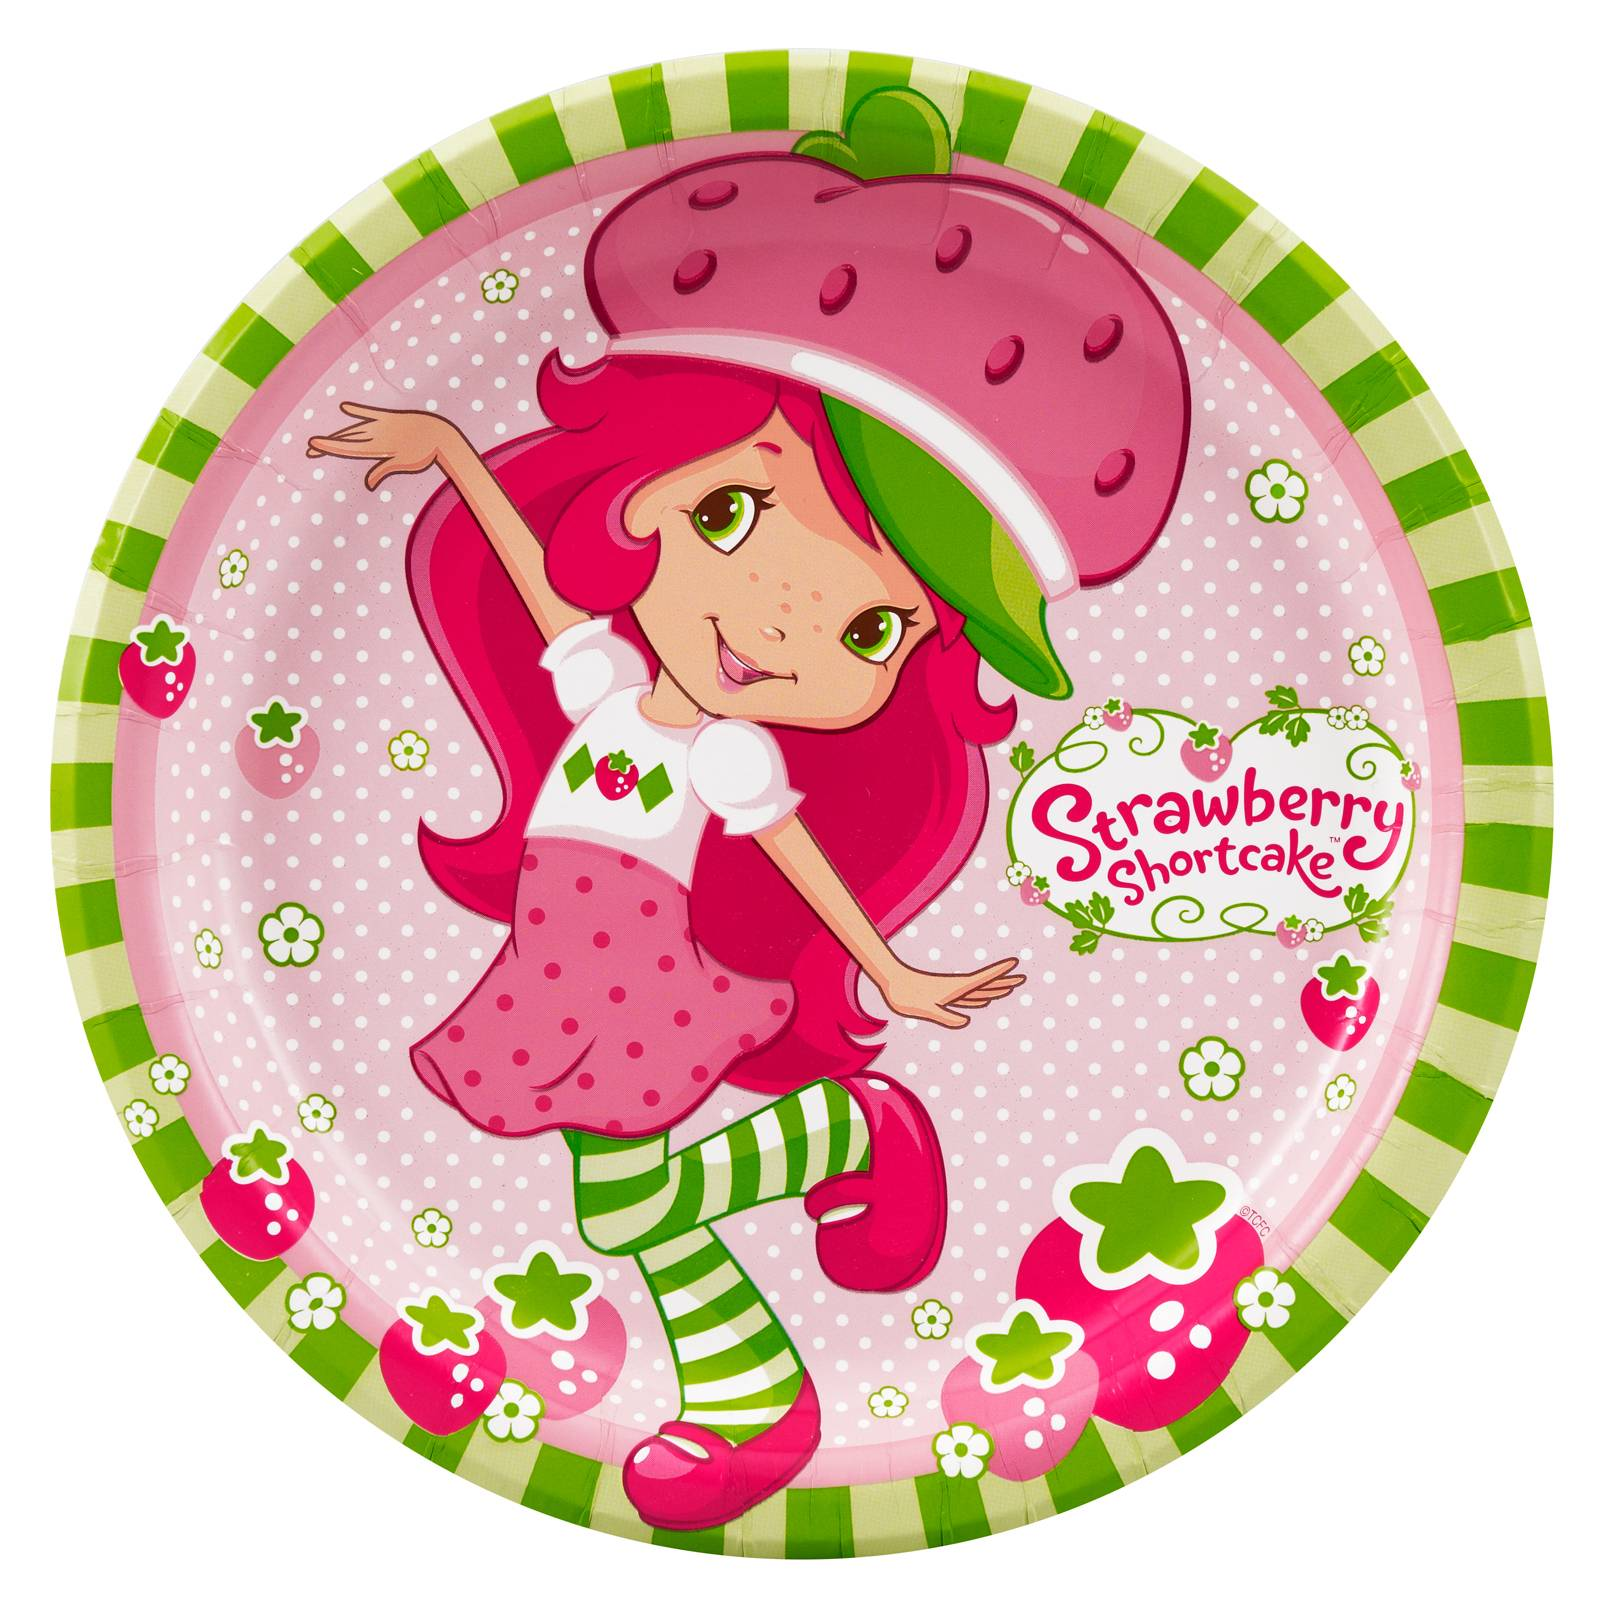 Strawberry Shortcake Backgrounds - Wallpaper Cave